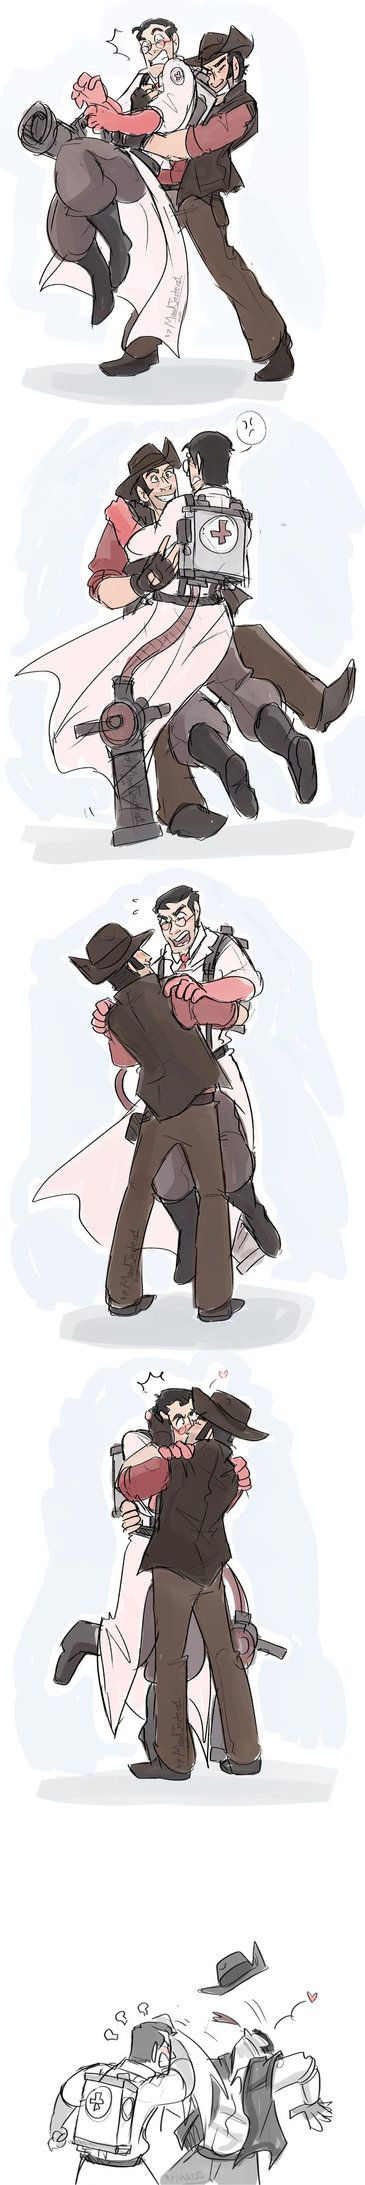 TF2- Victory by MadJesters1 (This artist makes me want to draw comics/fanart again XP Love her stuff!)